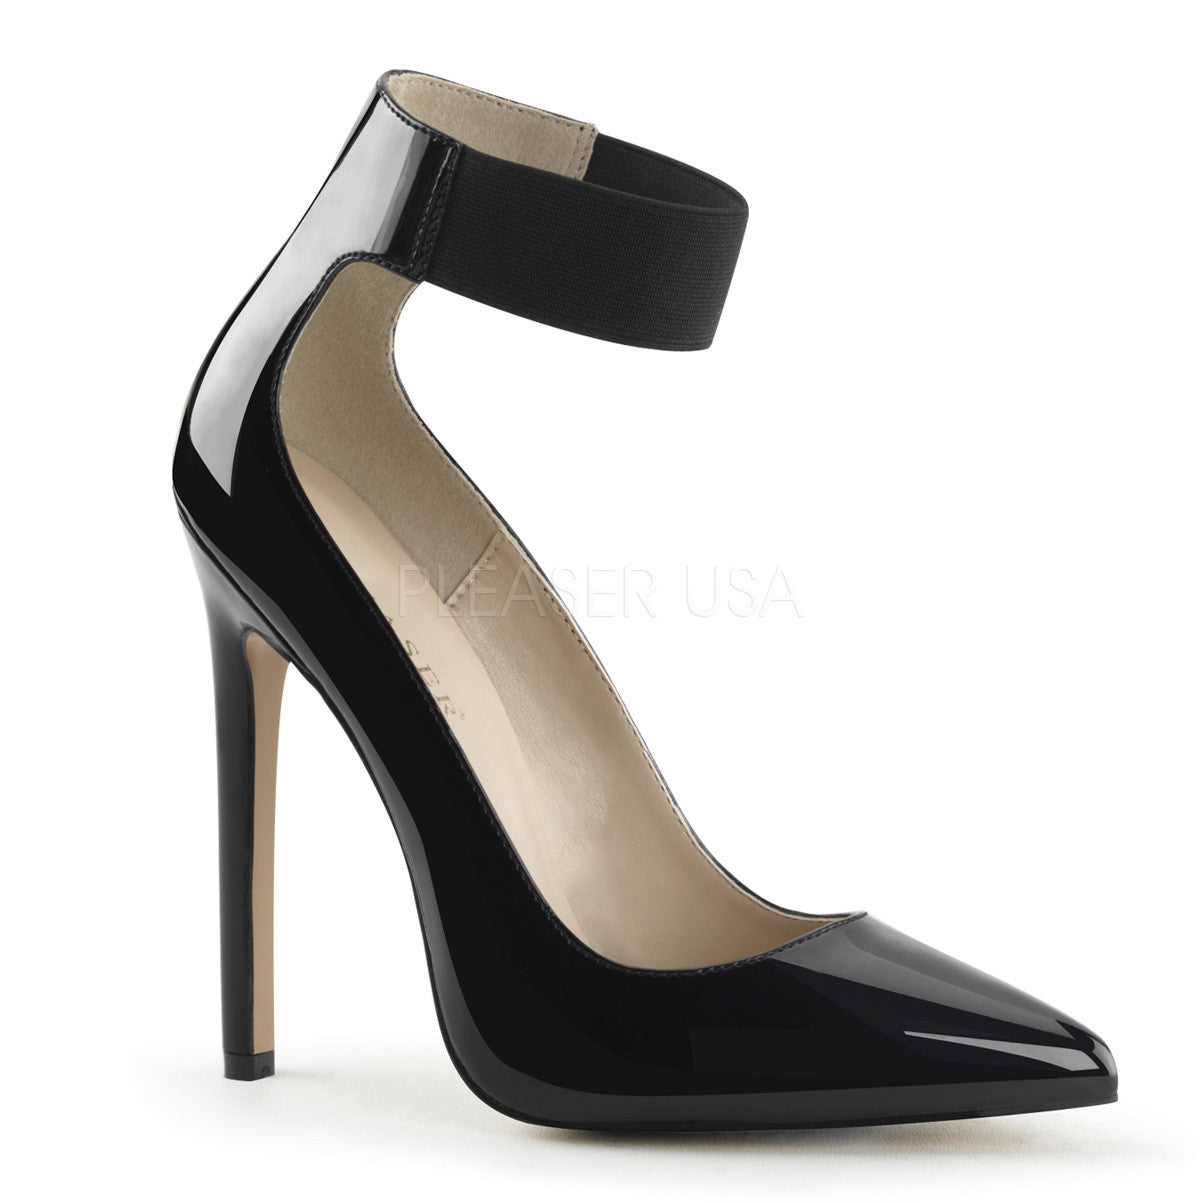 Pleaser SEXY-33 Black Patent Ankle Strap Pointed Toe Pumps - Shoecup.com